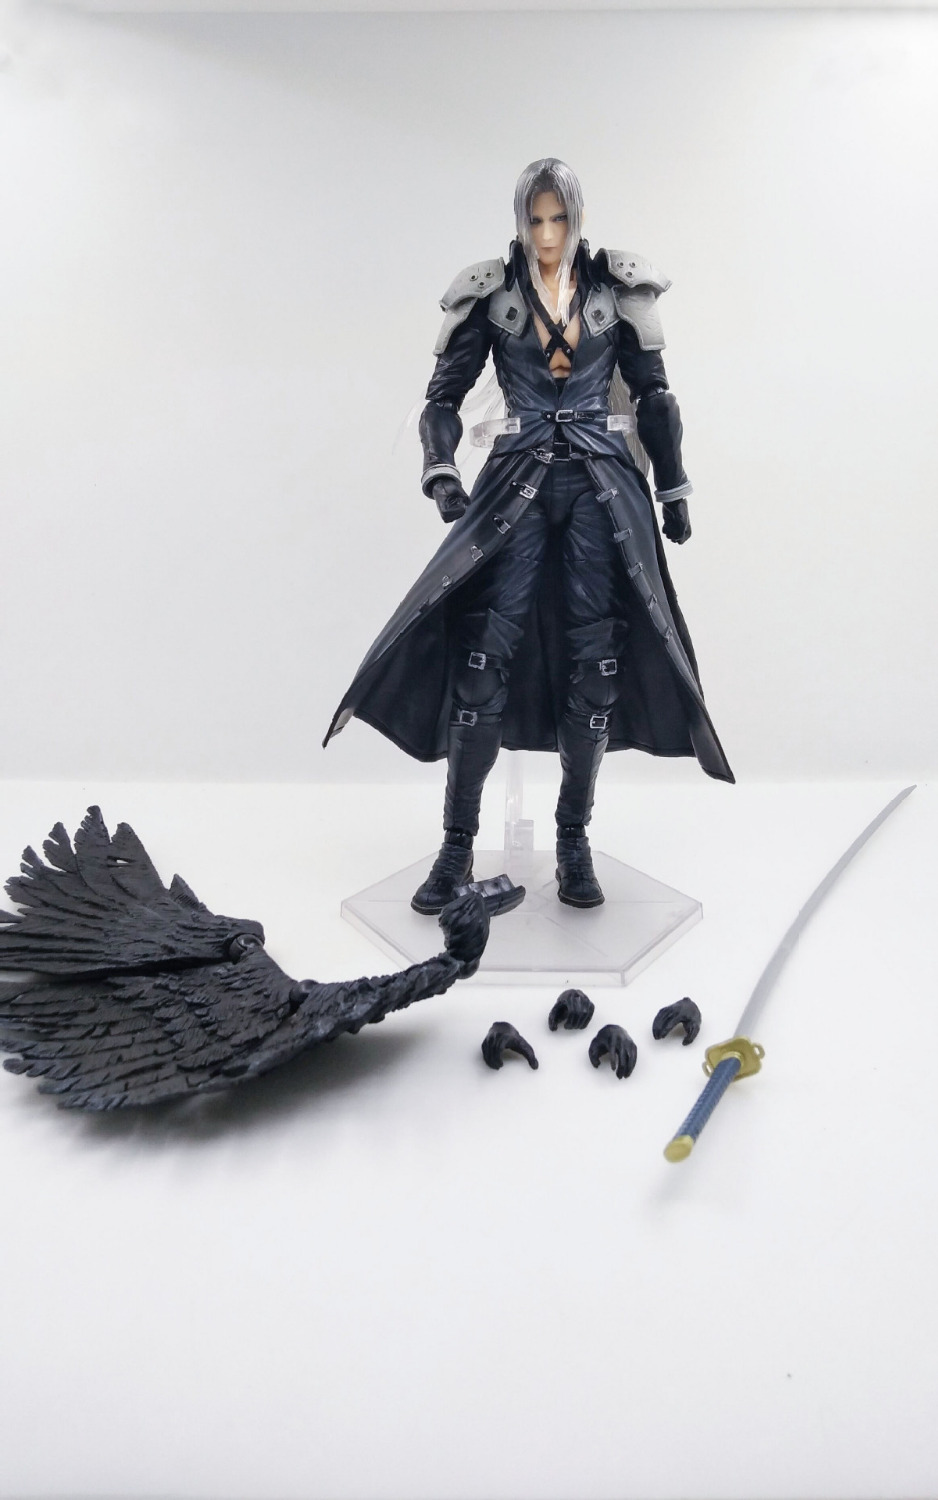 HKXZM Game Figure 25CM <font><b>Final</b></font> <font><b>Fantasy</b></font> VII <font><b>7</b></font> Sephiroth PVC Action Figure Model Toys Doll Collectible Gift image